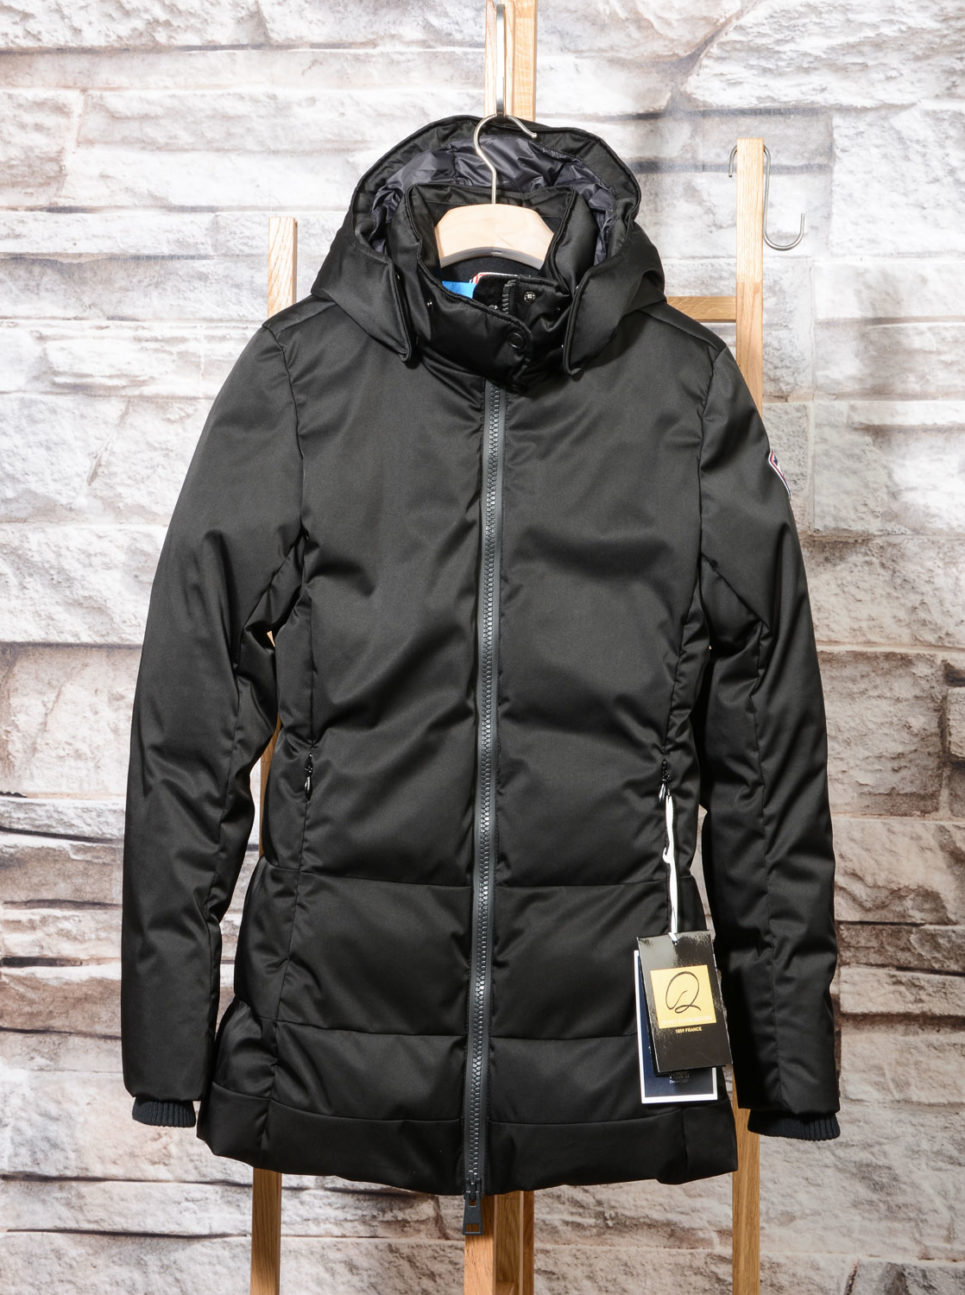 Parka Piumino Donna Eclipse Down Black Rossignol scontato in offerta (7)